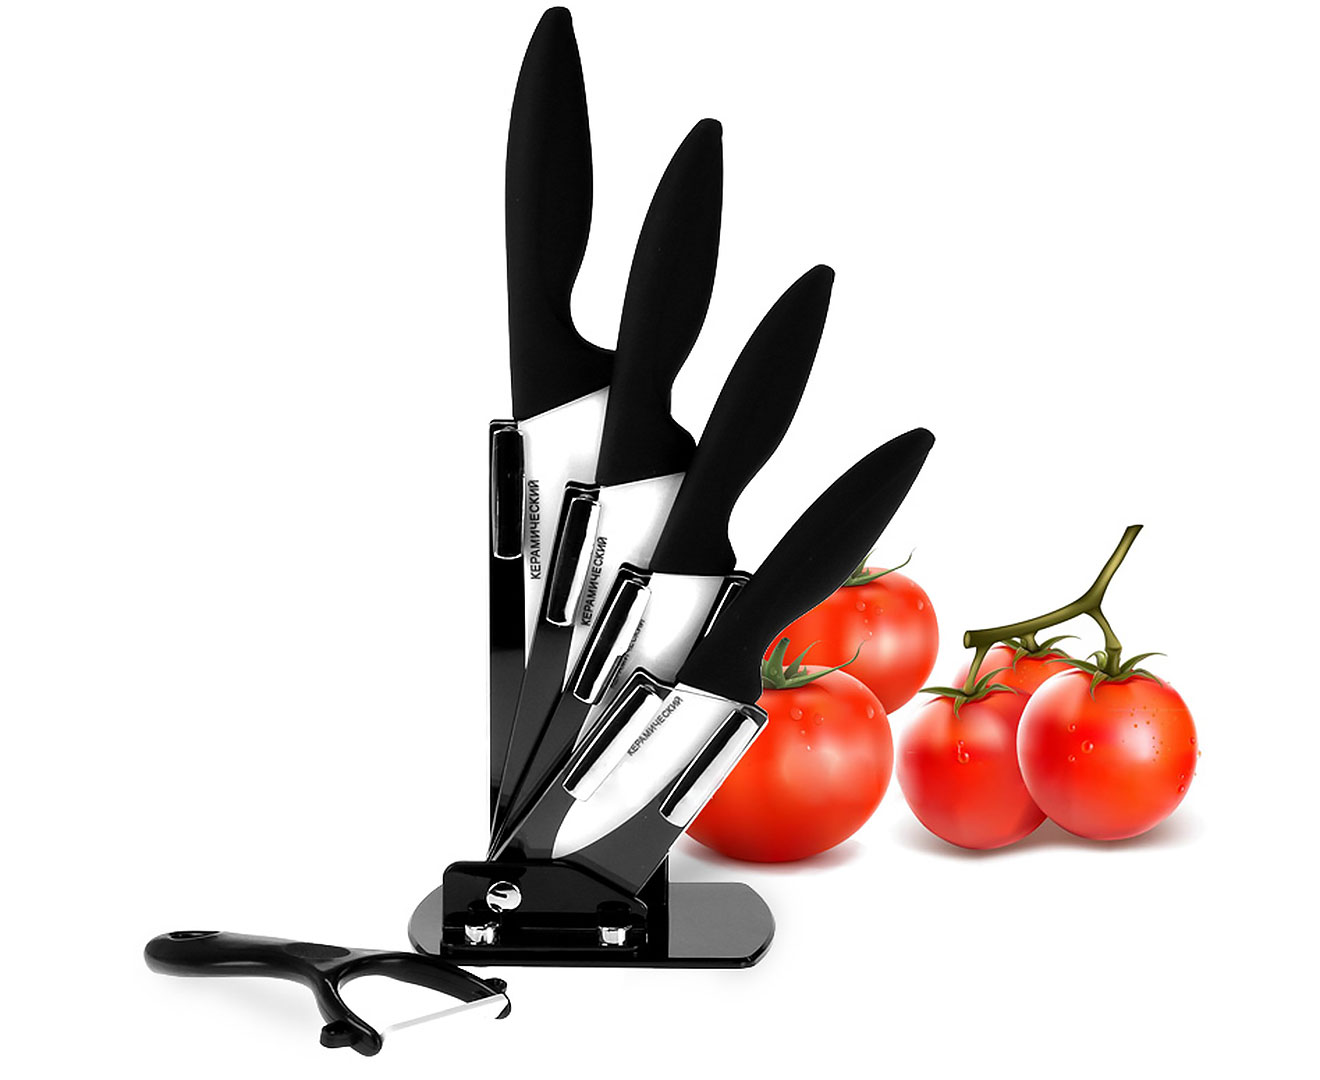 Ceramic Kitchen Knife Peeler 6pc Set